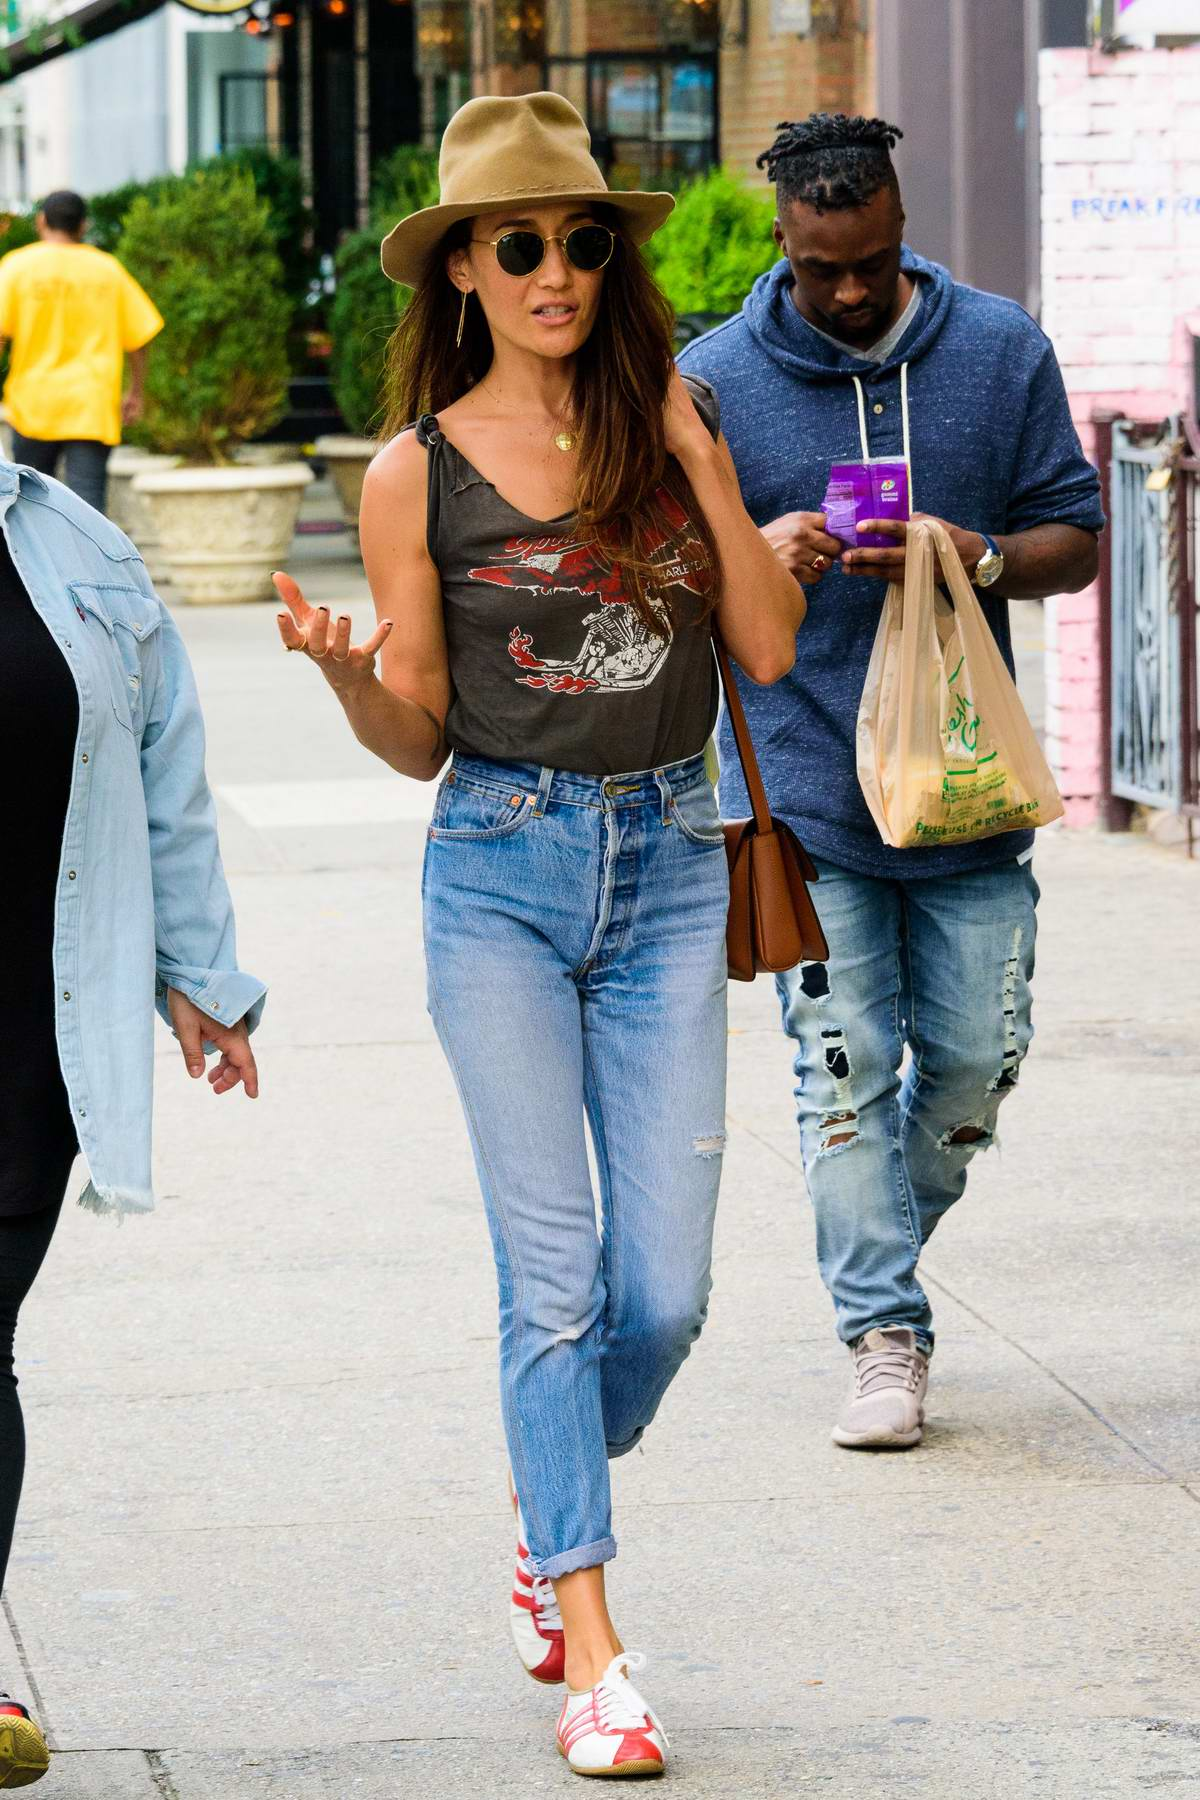 Maggie Q seen wearing a hat with Harley Davidson tank top and jeans while out on a stroll with a friend in New York City